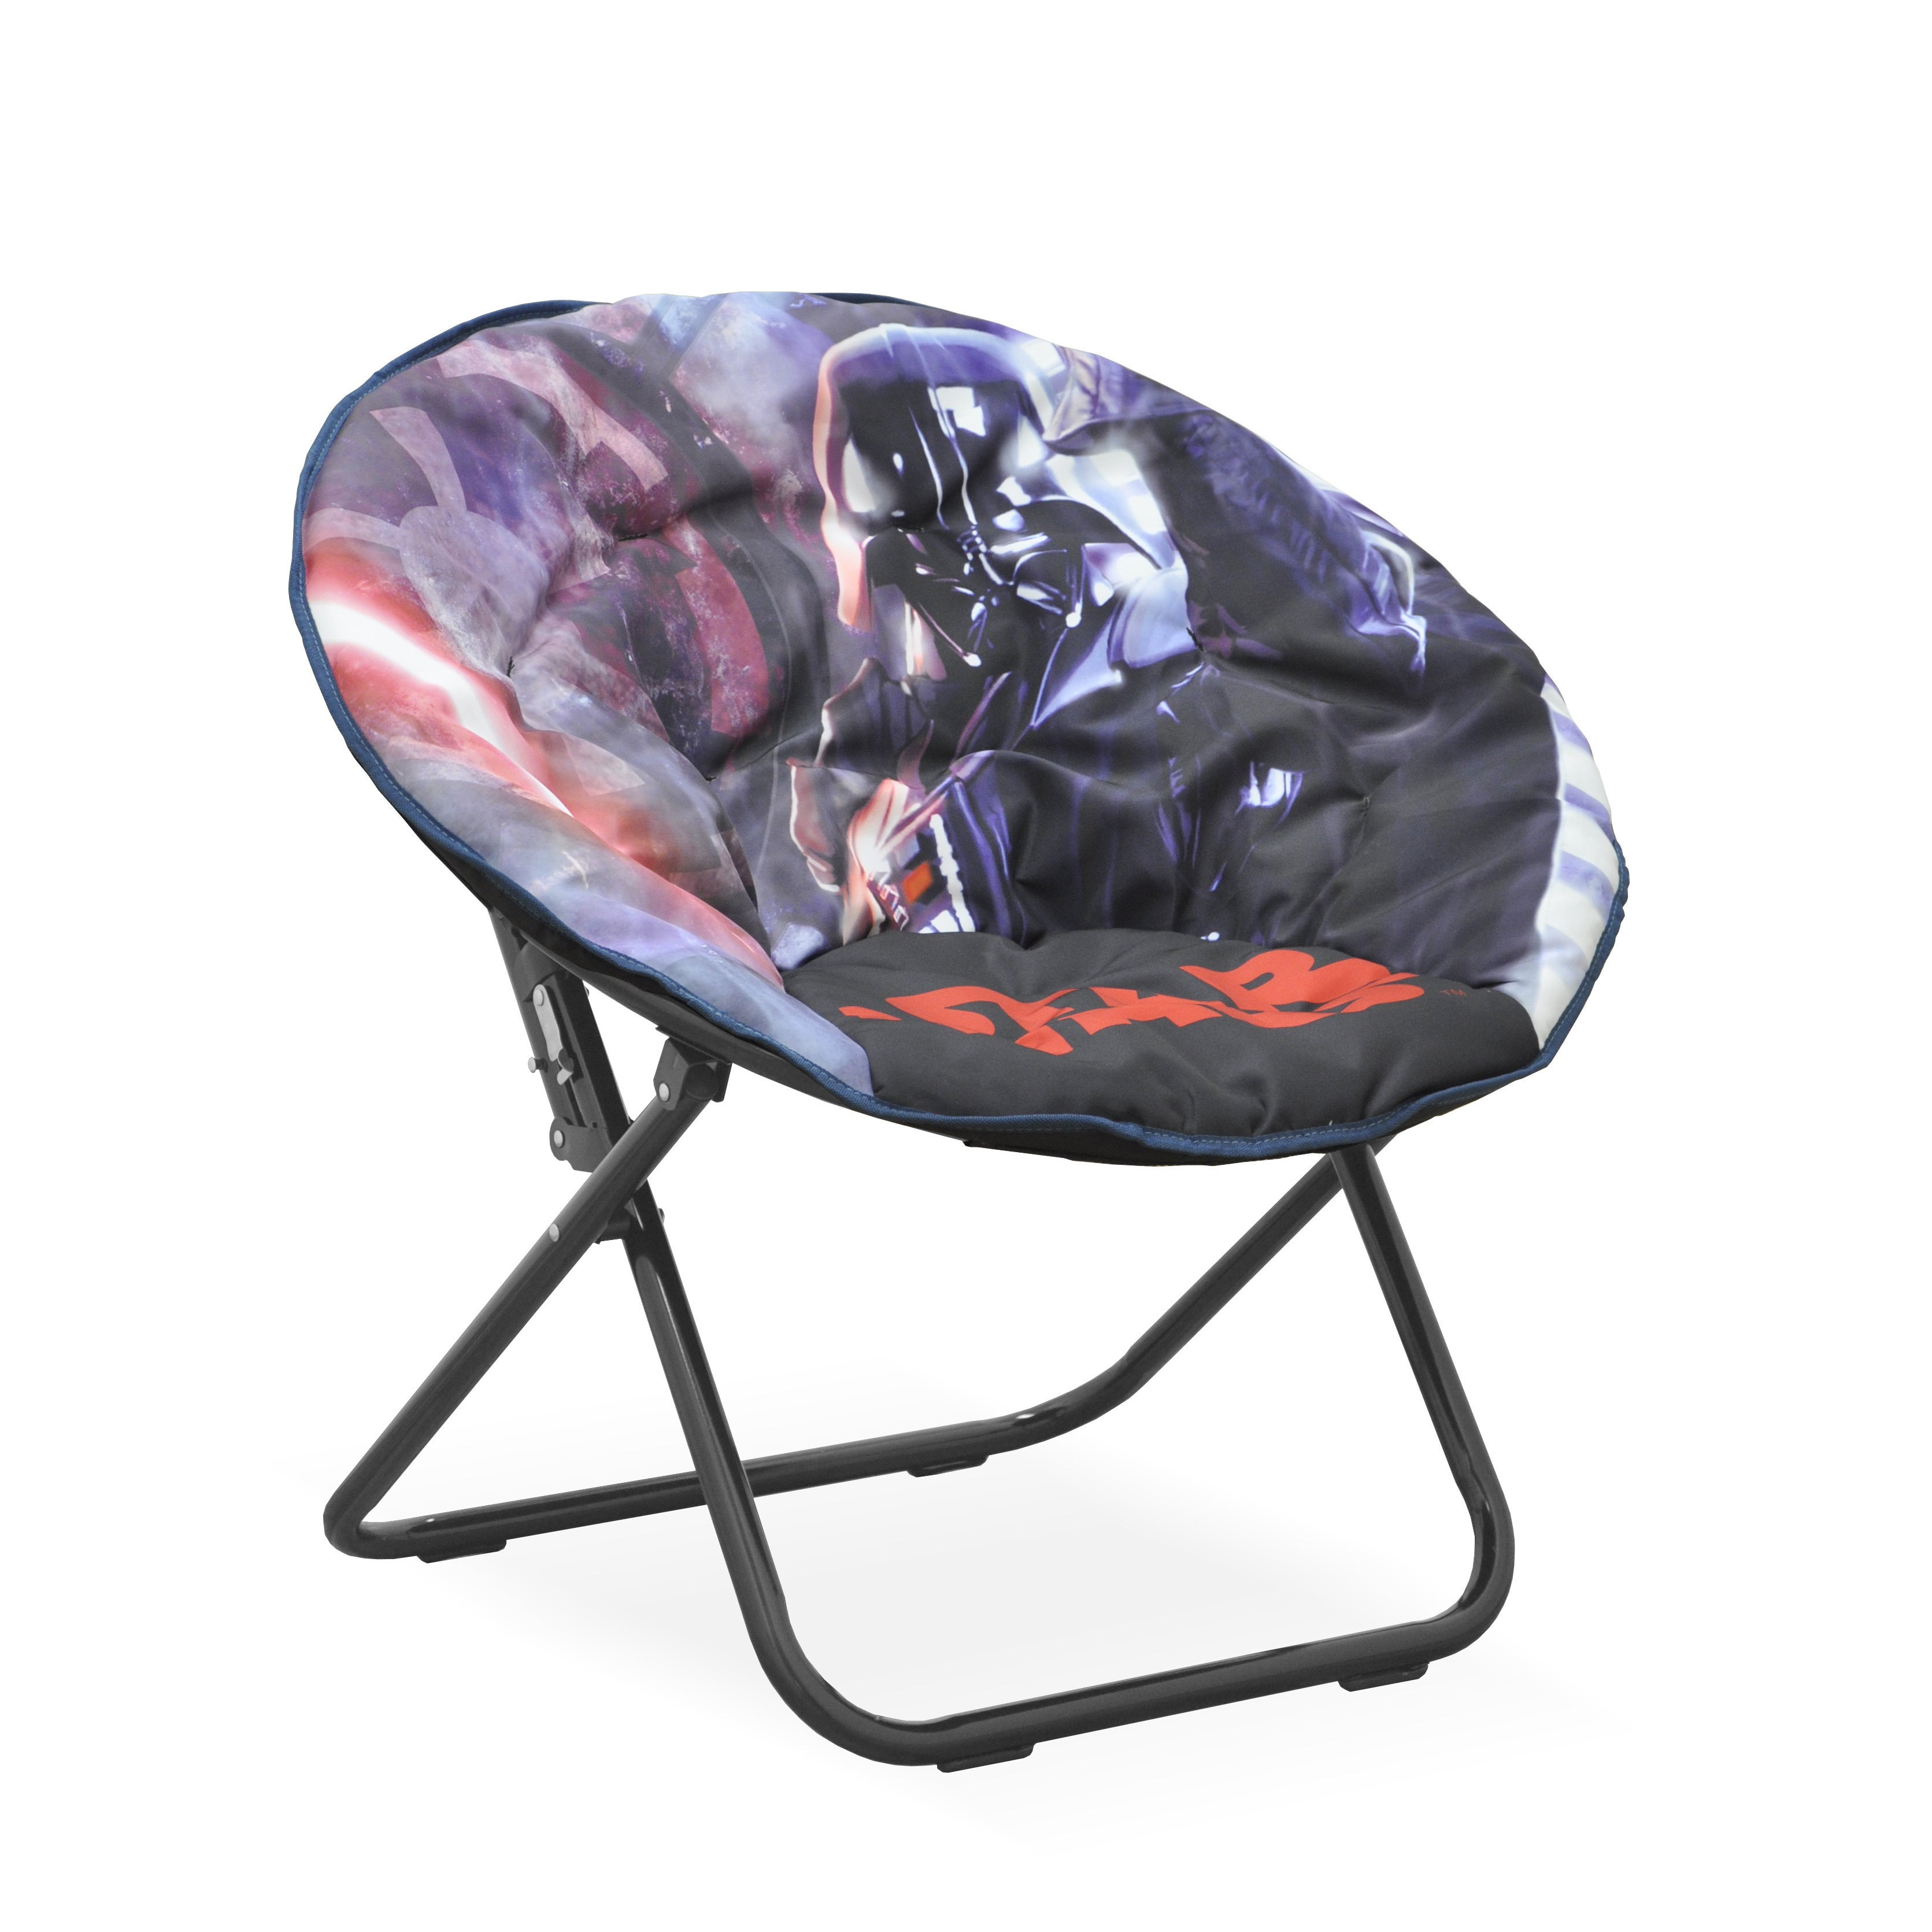 Star Wars Multicolored Polyester/Metal Kids Saucer Chair ...